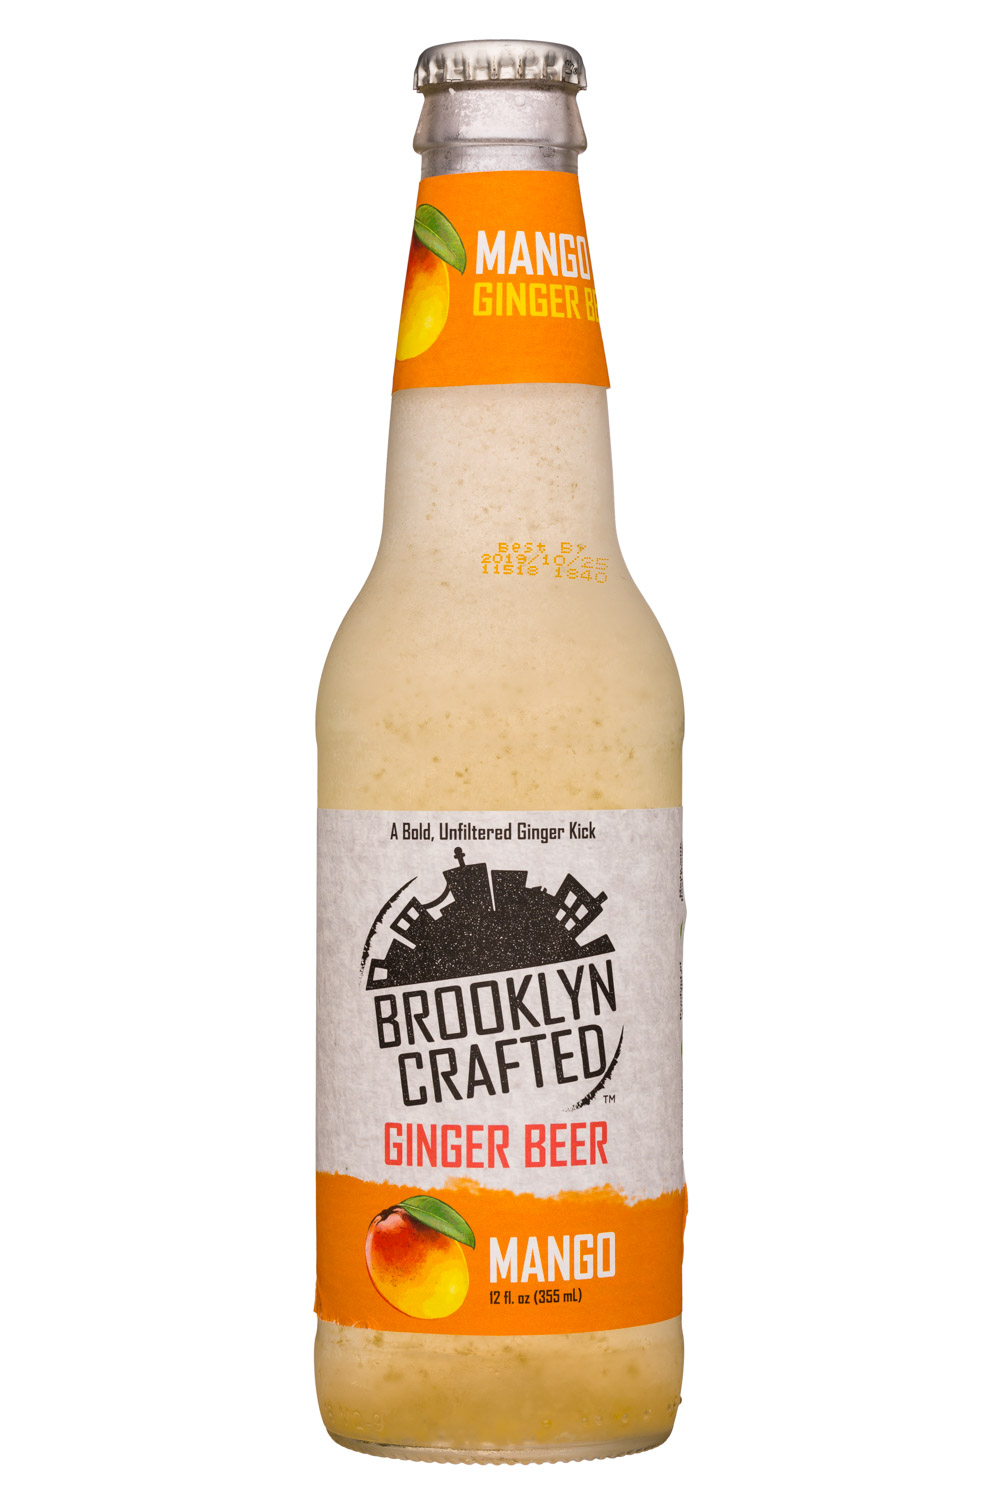 Brooklyn Crafted: BrooklynCrafted-12oz-GingerBeer-Mango-Front